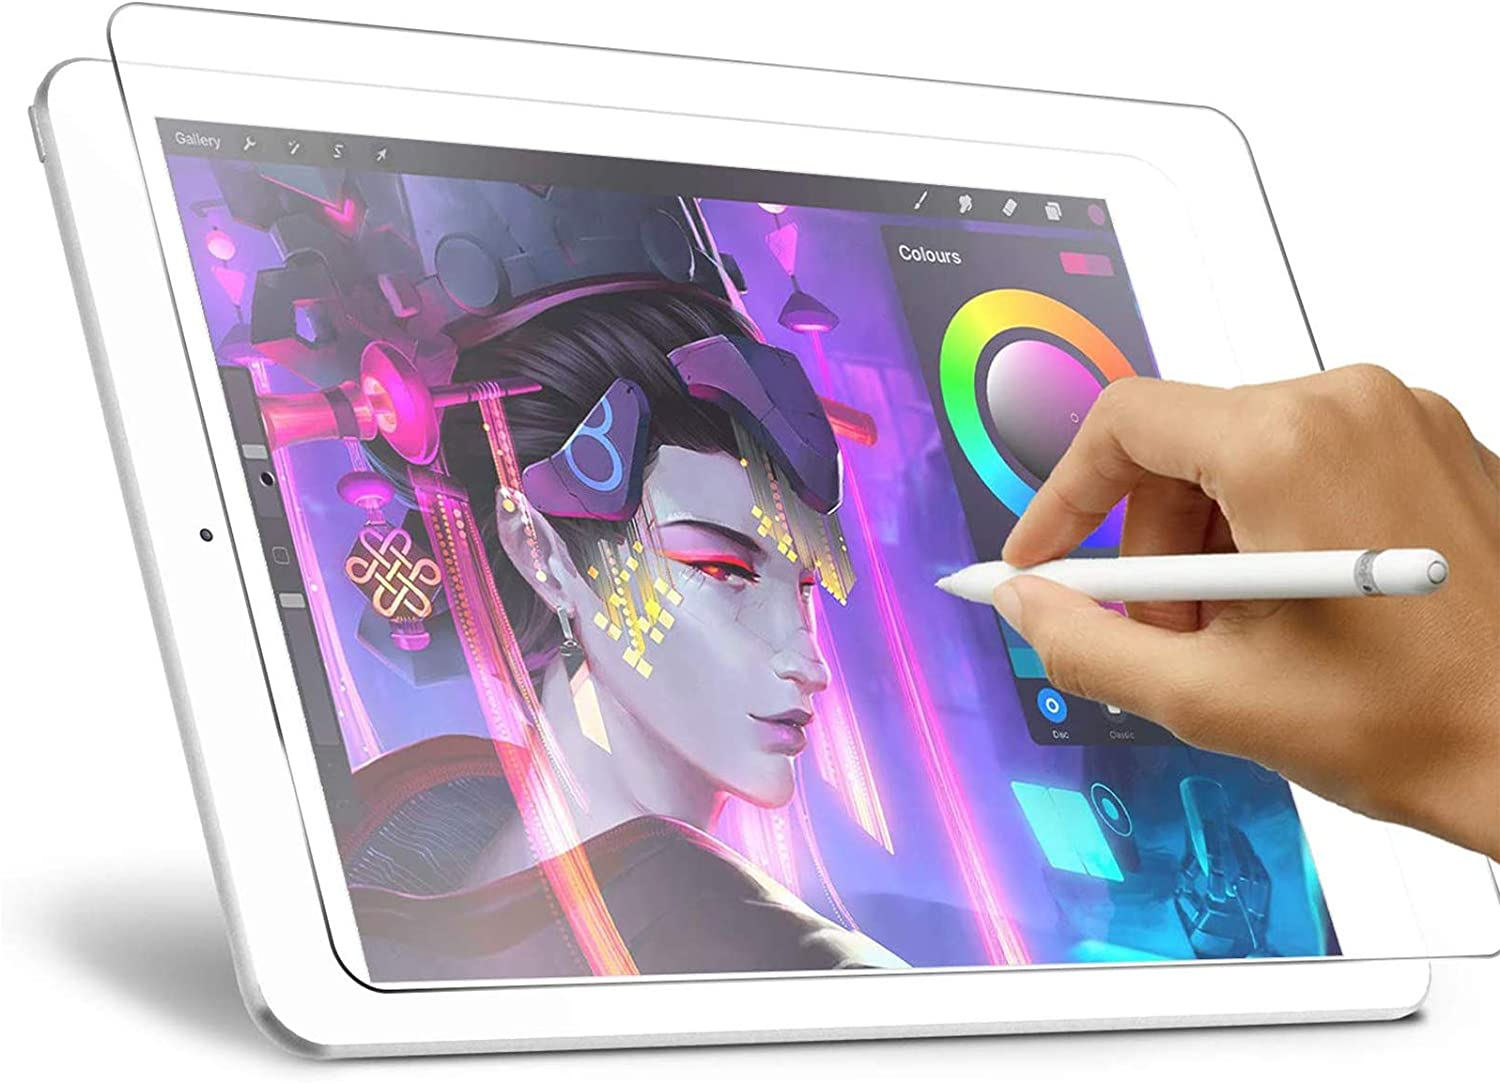 Like Paper Screen Protector for iPad 8th/7th Generation (10.2-Inch, 2020/2019 Model), XIRON High Touch Sensitivity No Glare Scratch for iPad 10.2 Matte Screen Protector Compatible with Apple Pencil